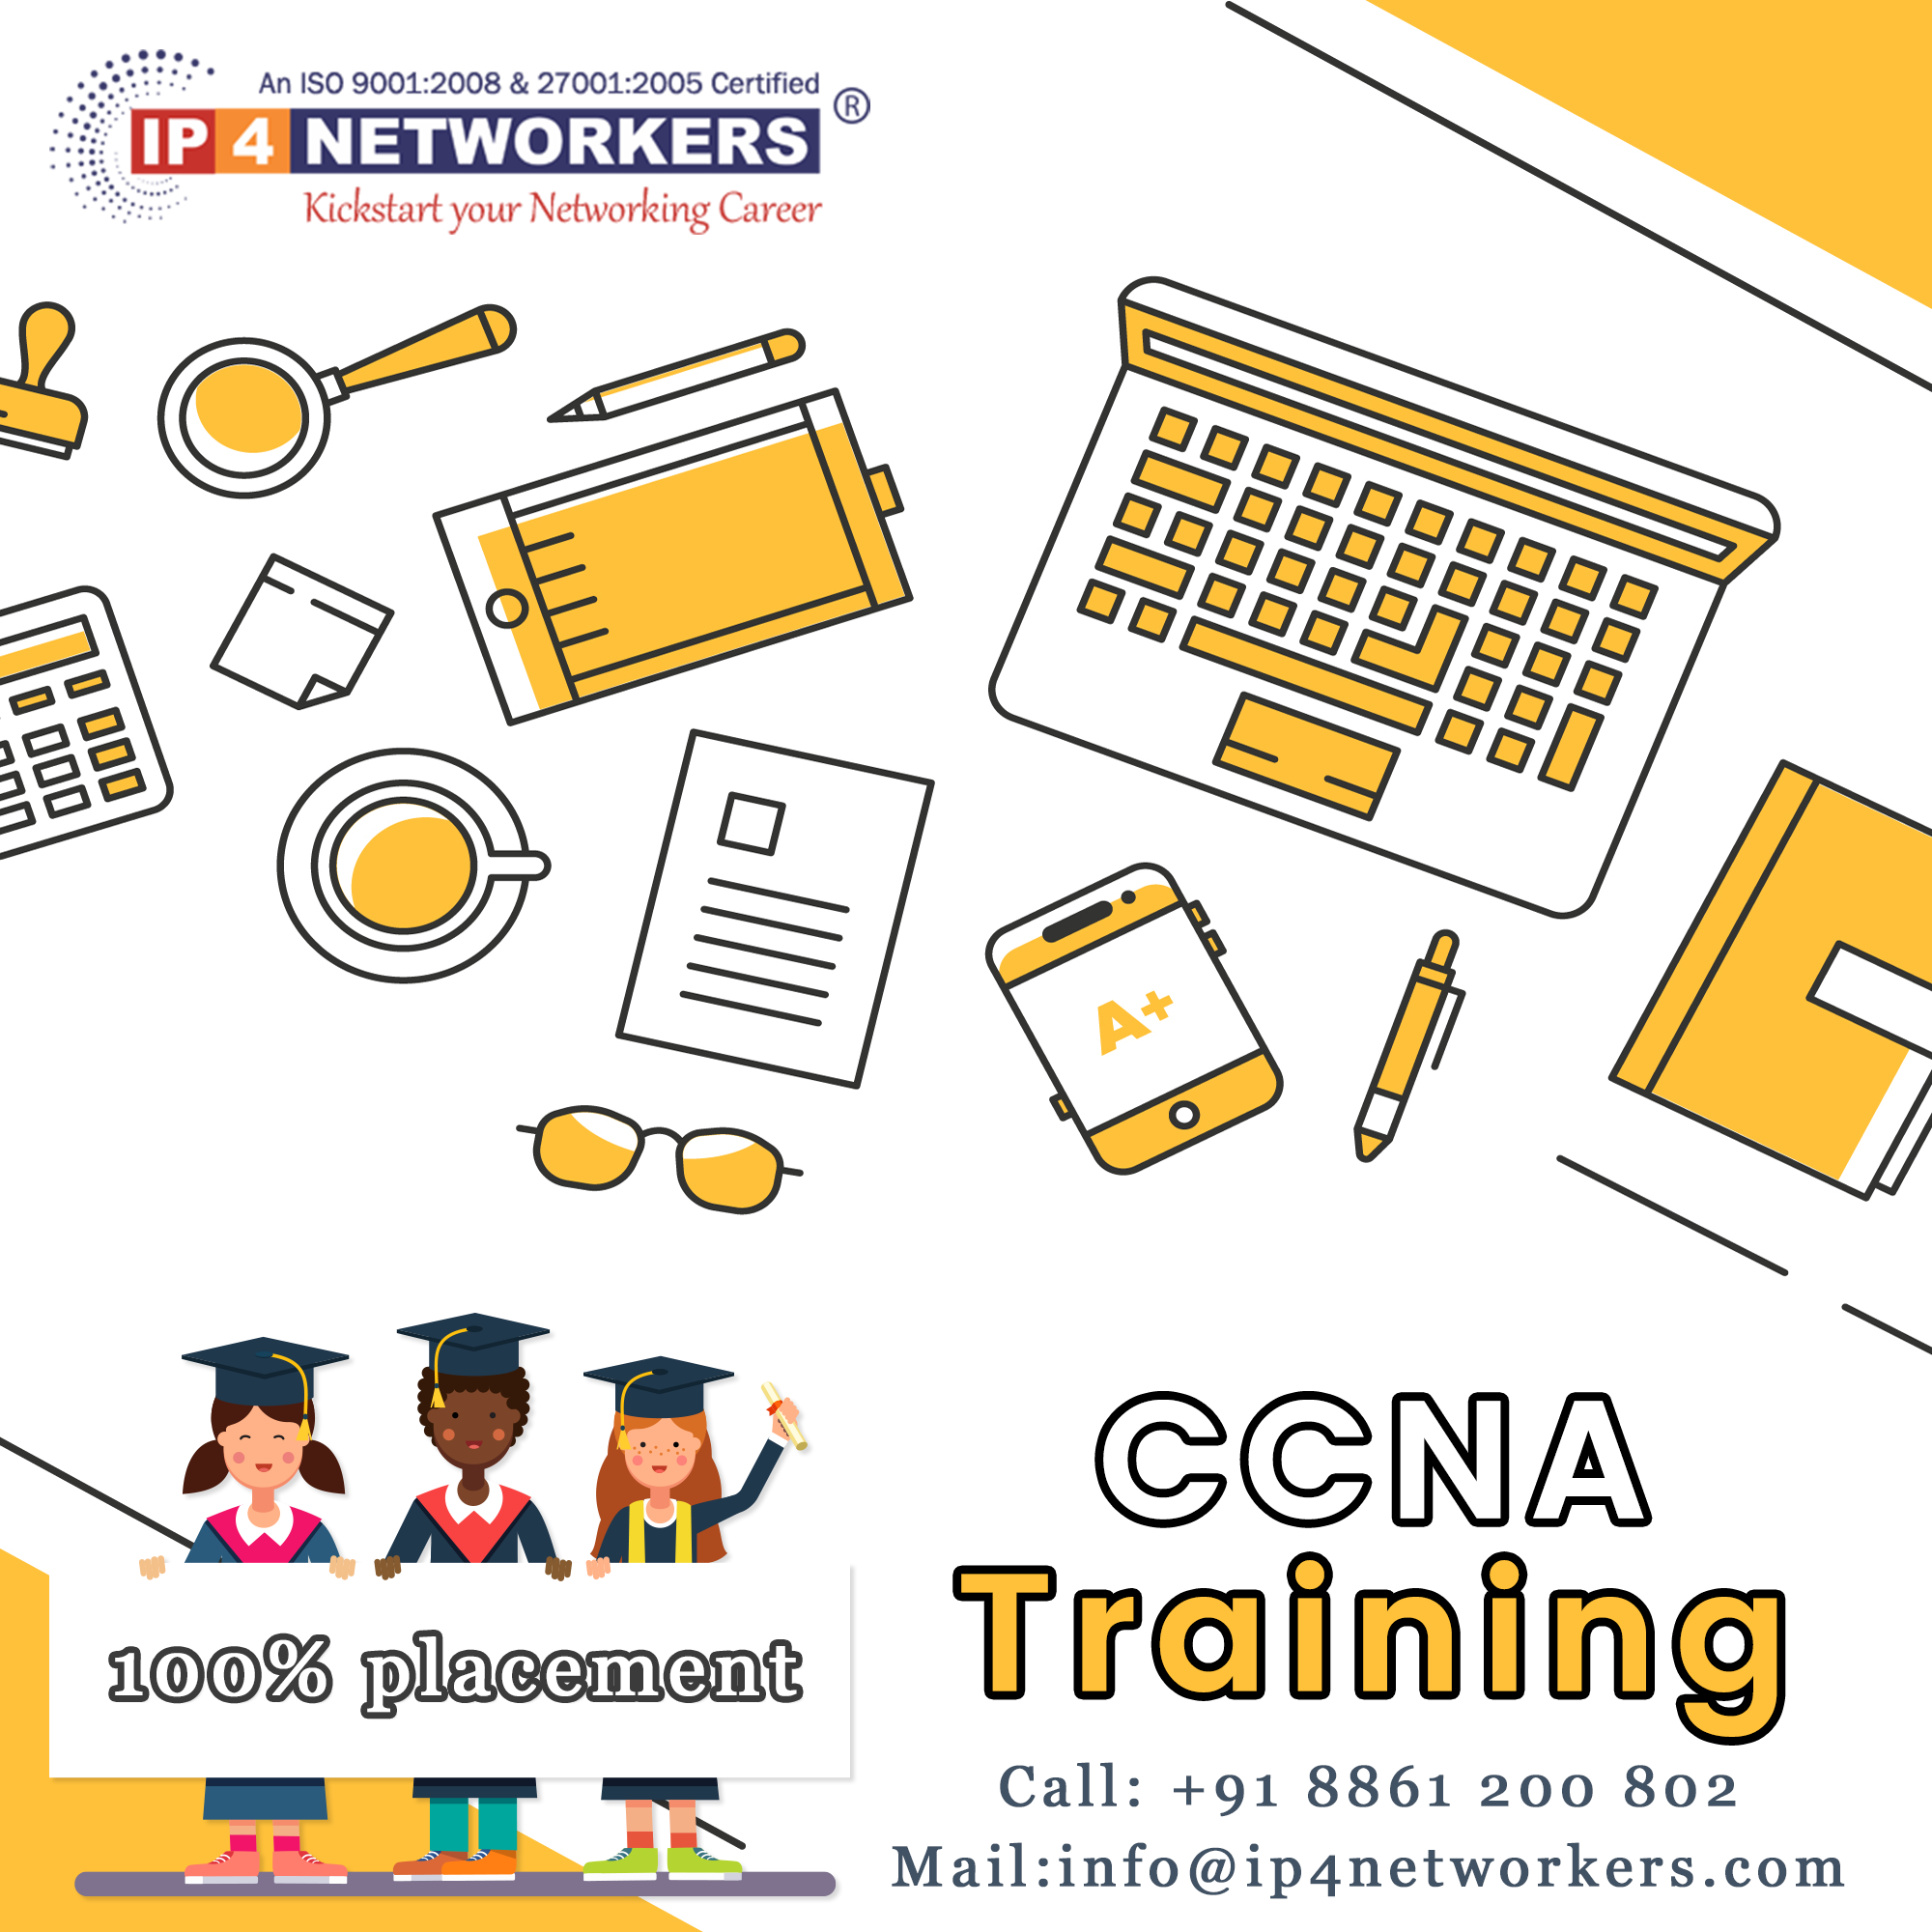 Ip4 networkers is providing you advanced ccna certification ip4 networkers is providing you advanced ccna certification training that you are looking for in bangalore india here you find the great atmosphere to xflitez Gallery